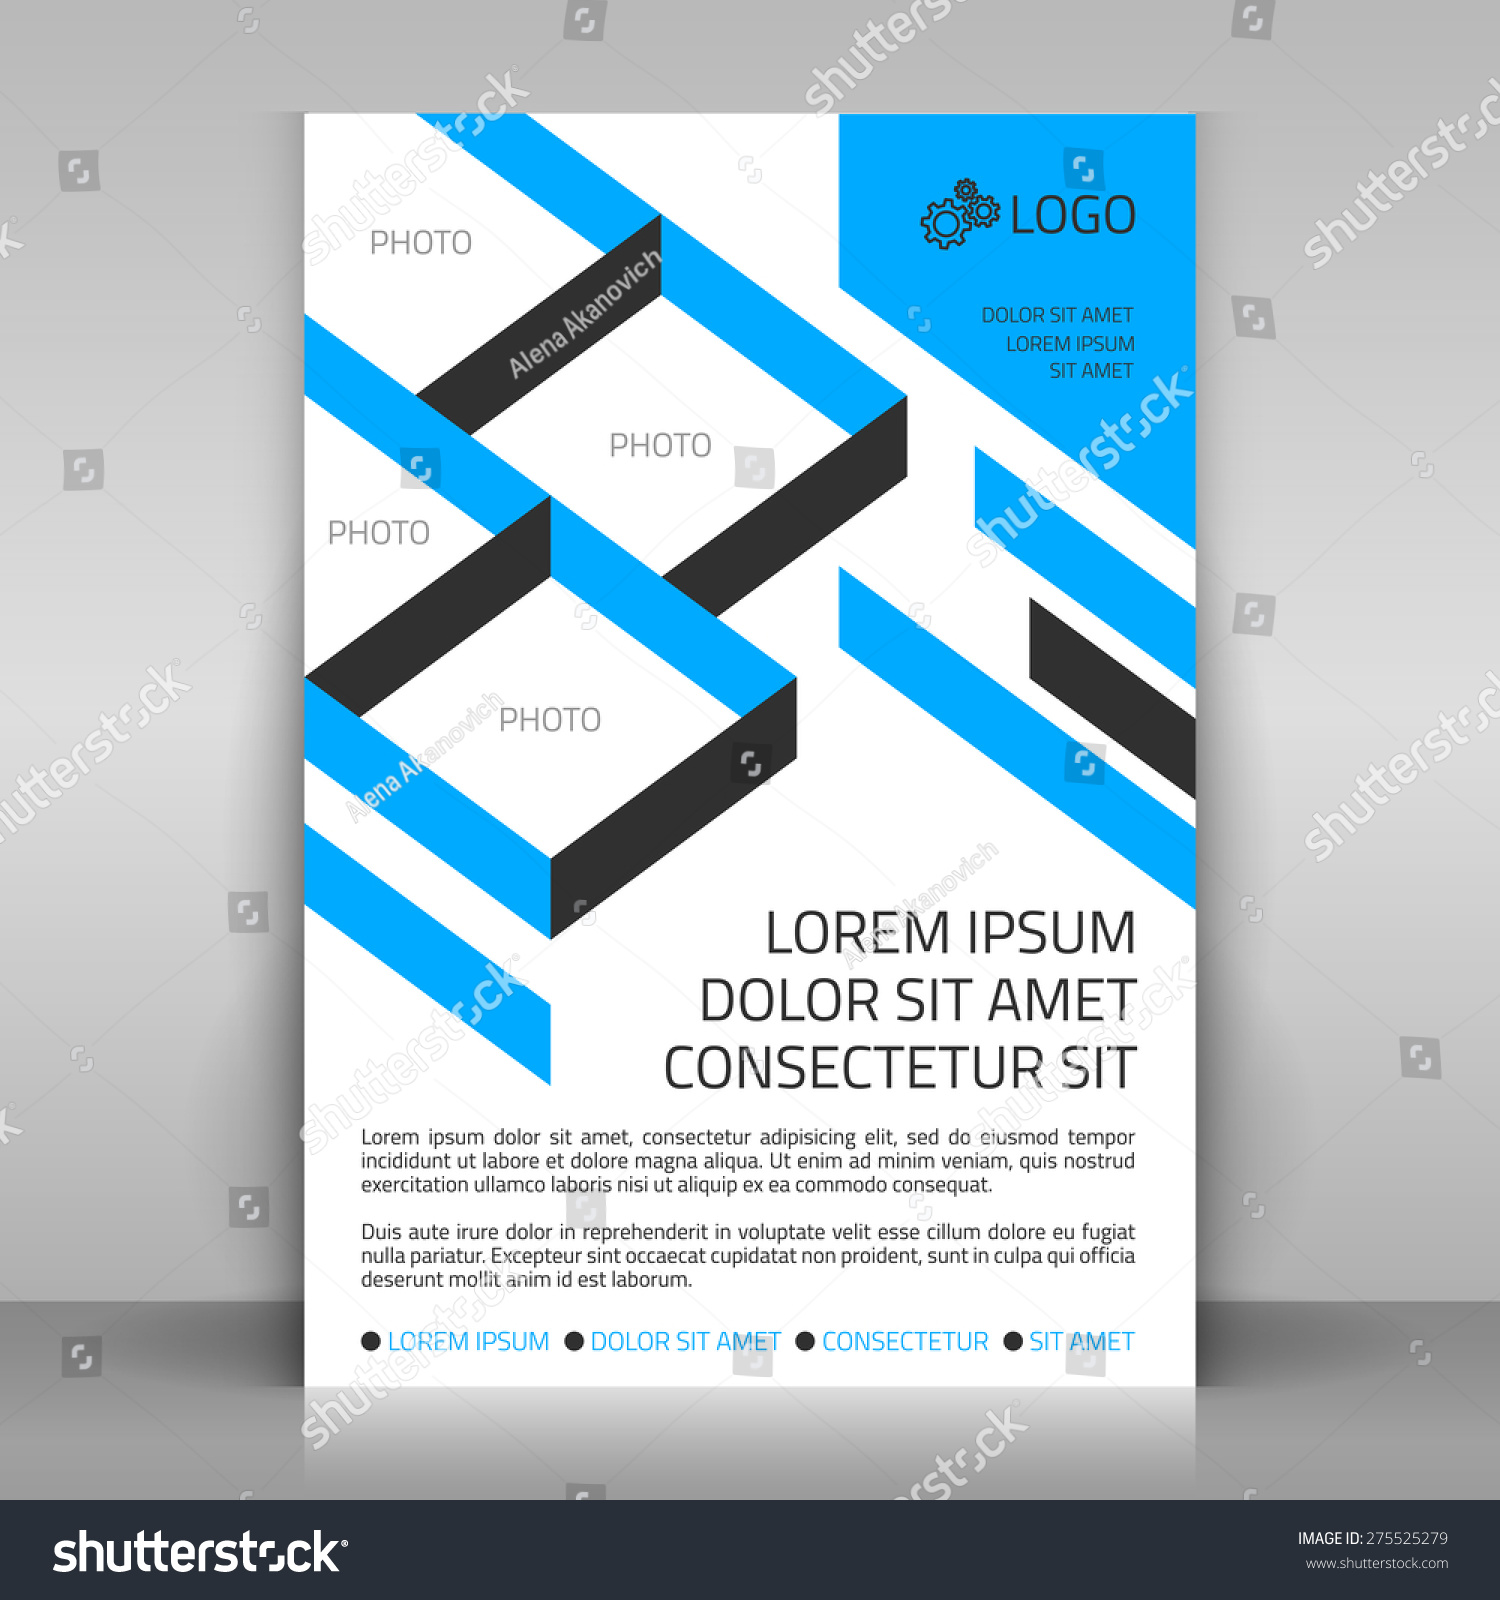 Company Flyer U2013 OpenOffice Template Outstanding Job Templates, 20 Beautiful  Modern Brochure Design Ideas For Your 2014, Corporate Business Training  Start ...